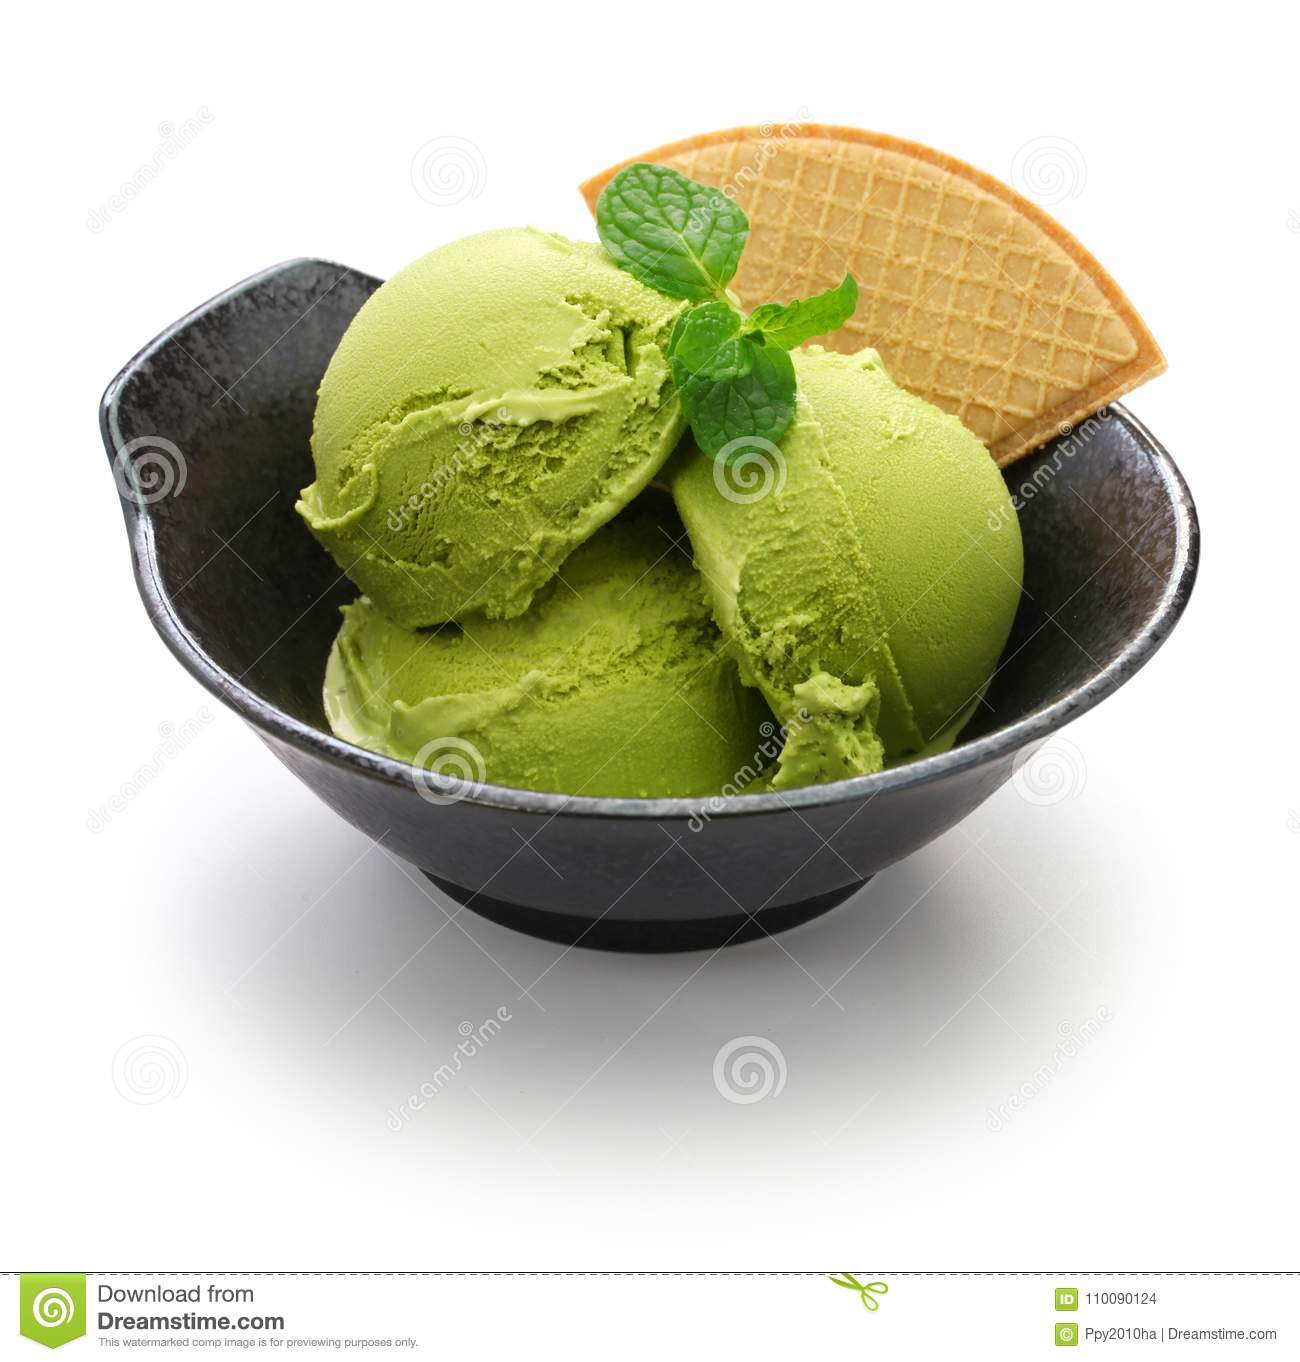 How to make green tea ice cream at home